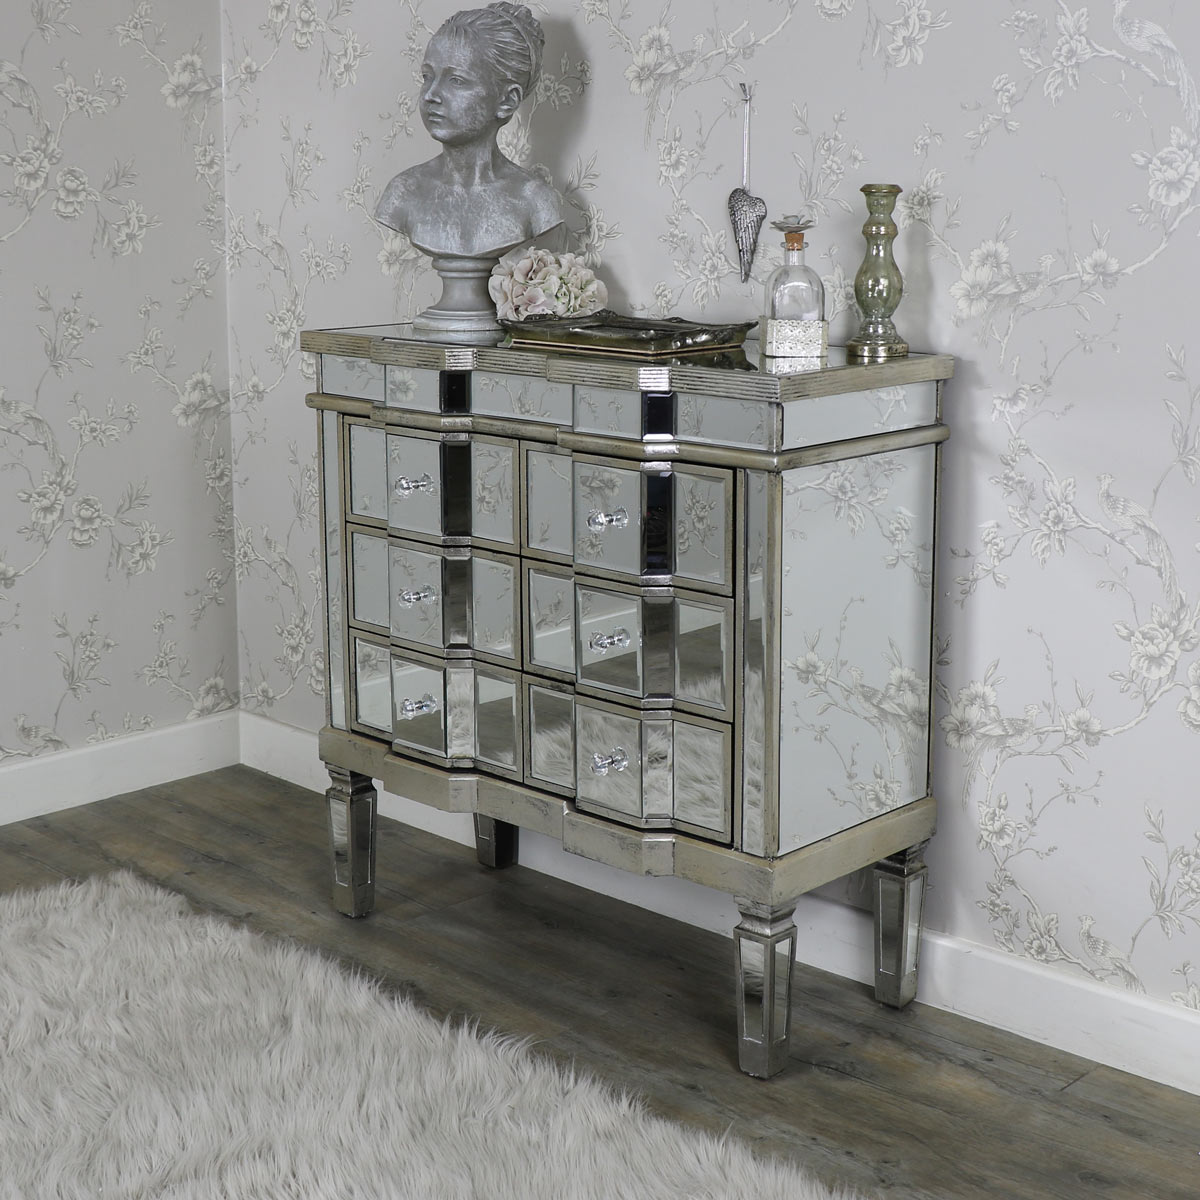 Six Drawer Wooden Mirrored Chest Of Drawers Shabby French Chic Bedroom Furniture Ebay